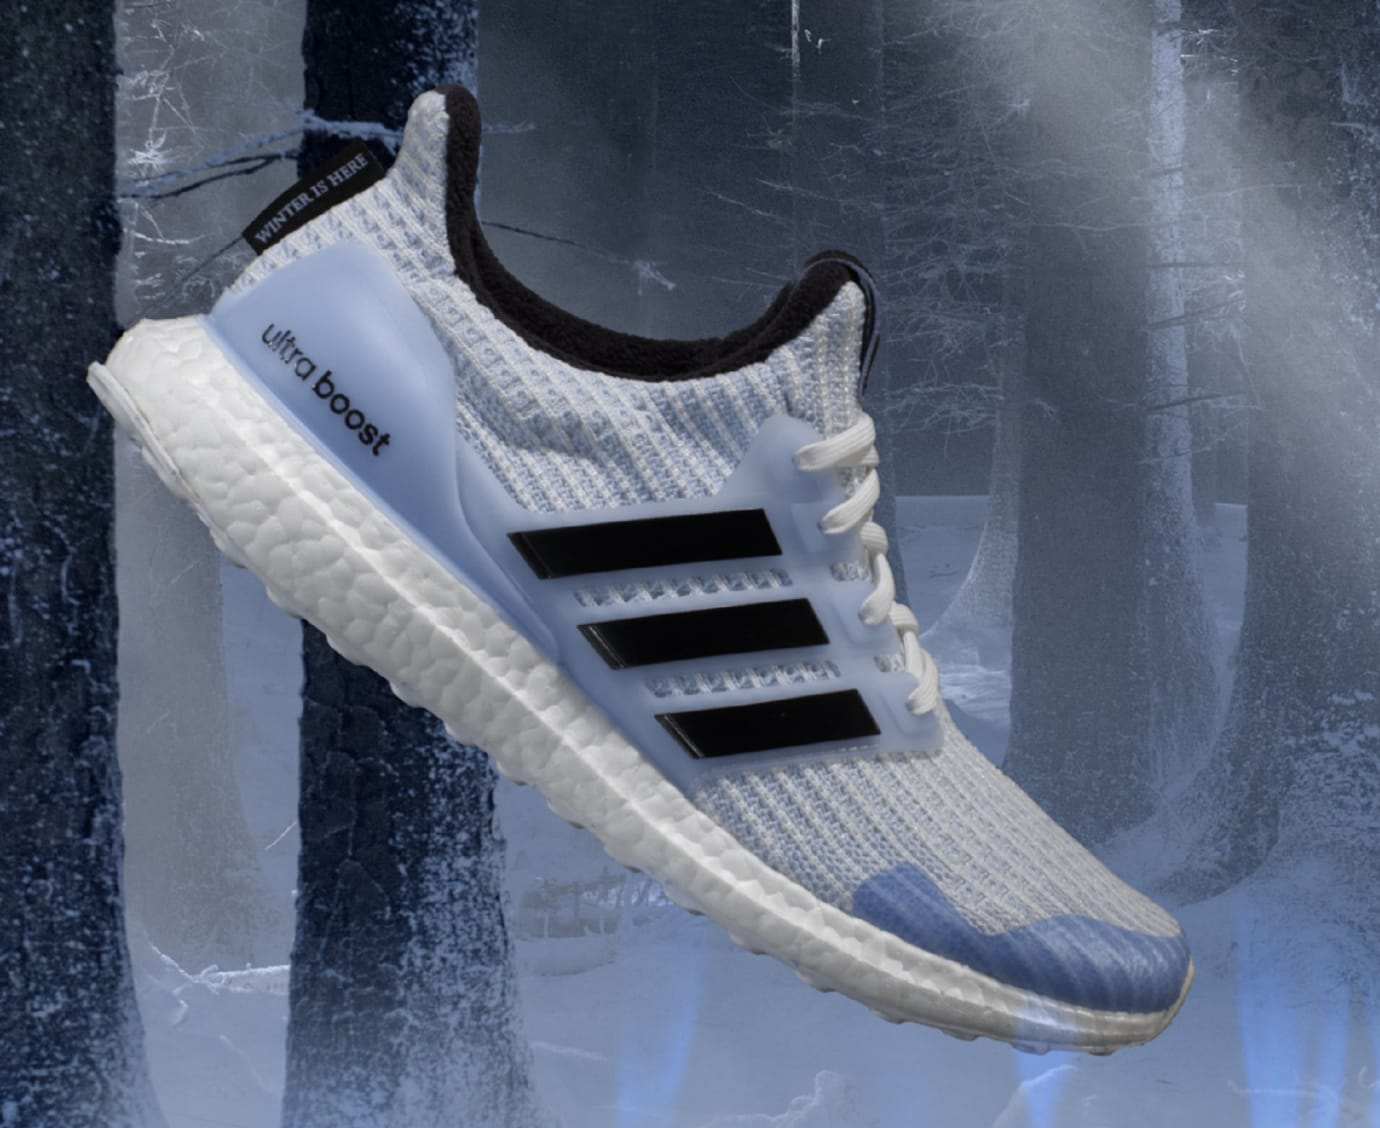 'Game of Thrones' x Adidas Ultra Boost 'White Walker'